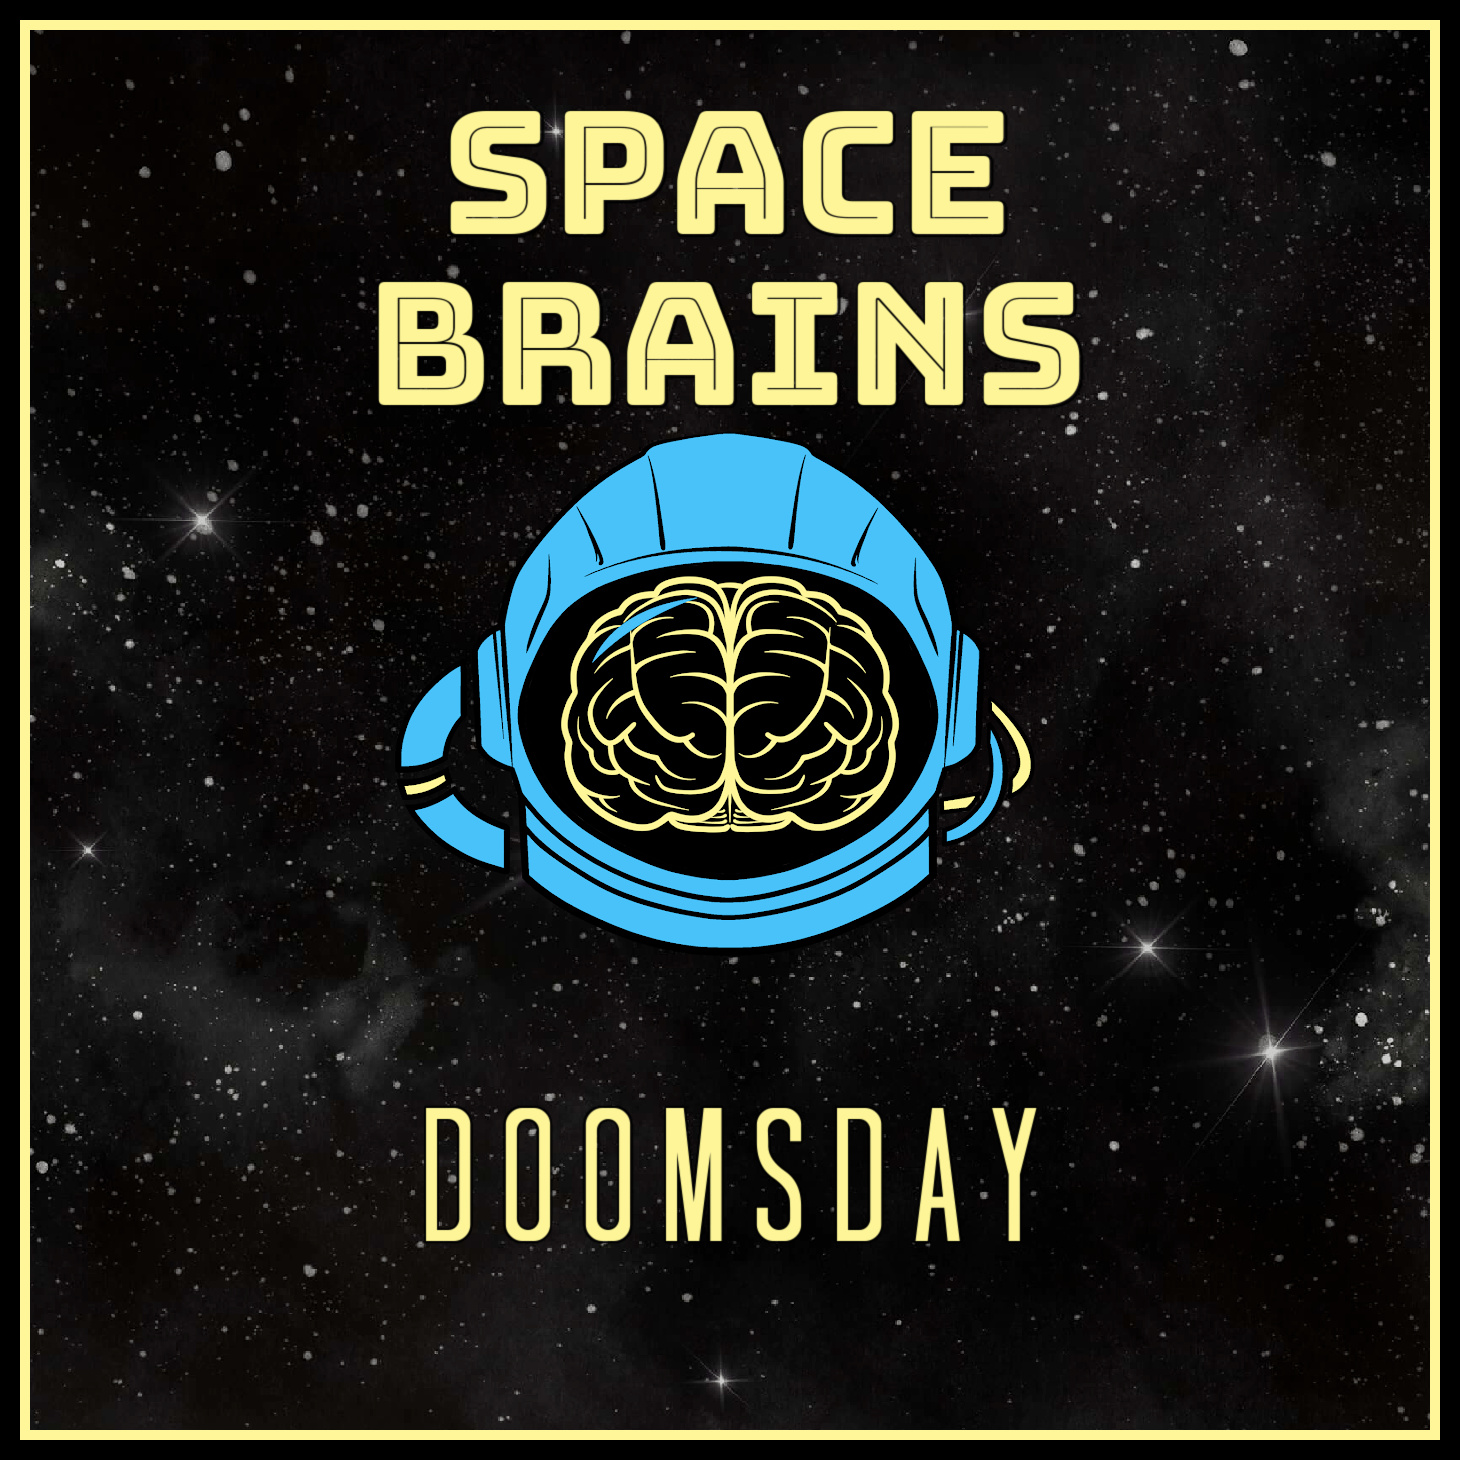 Space Brains - 47 - Doomsday